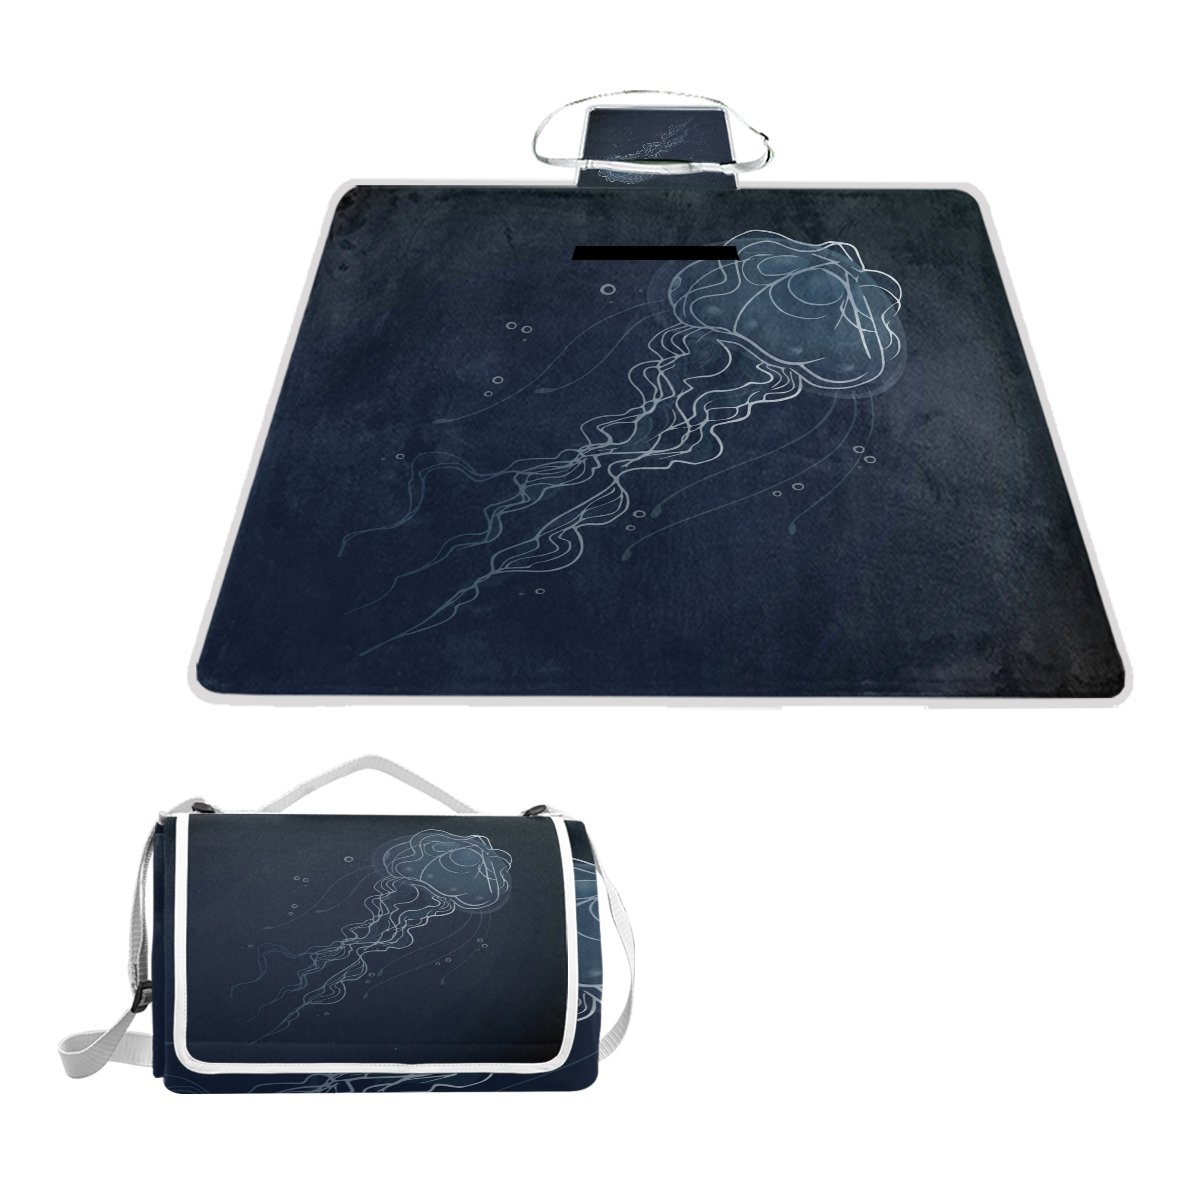 Fengye Funny Jellyfish Outdoor Handy Picnic Blanket Mat Cover Waterproof Grass Carpets Foldable Tote bag Camping Hiking Beach